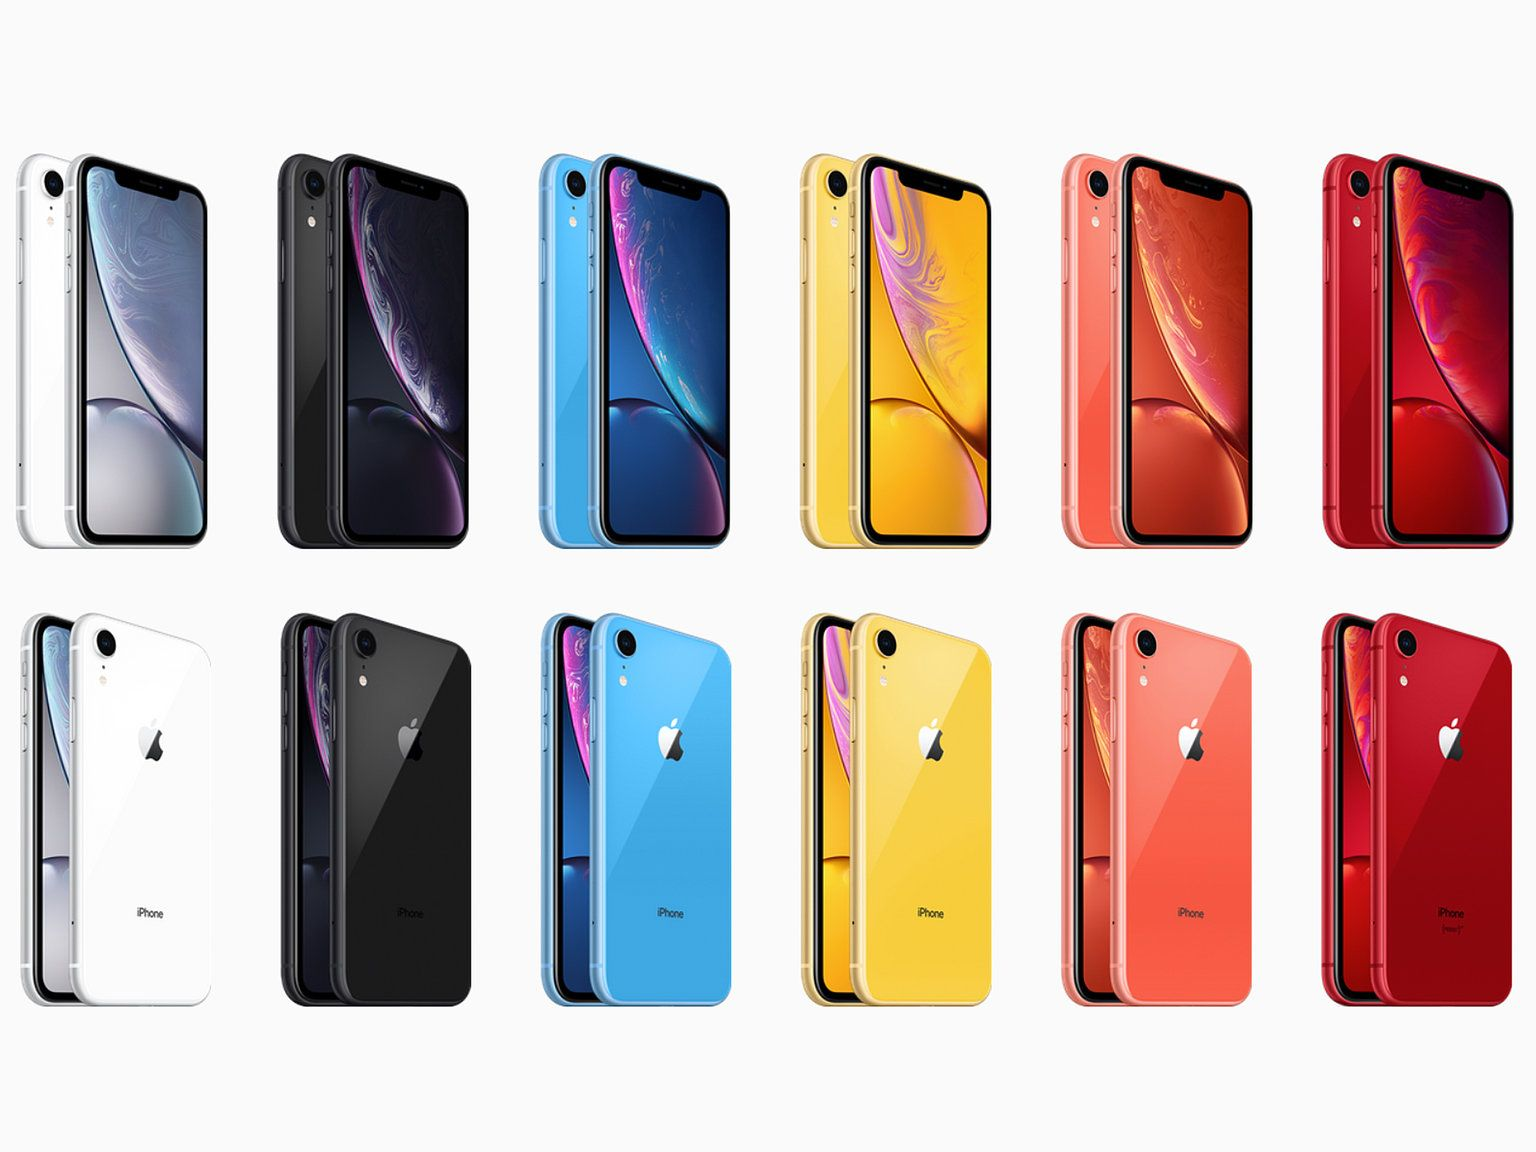 9 reasons you should buy the iPhone XR instead of an